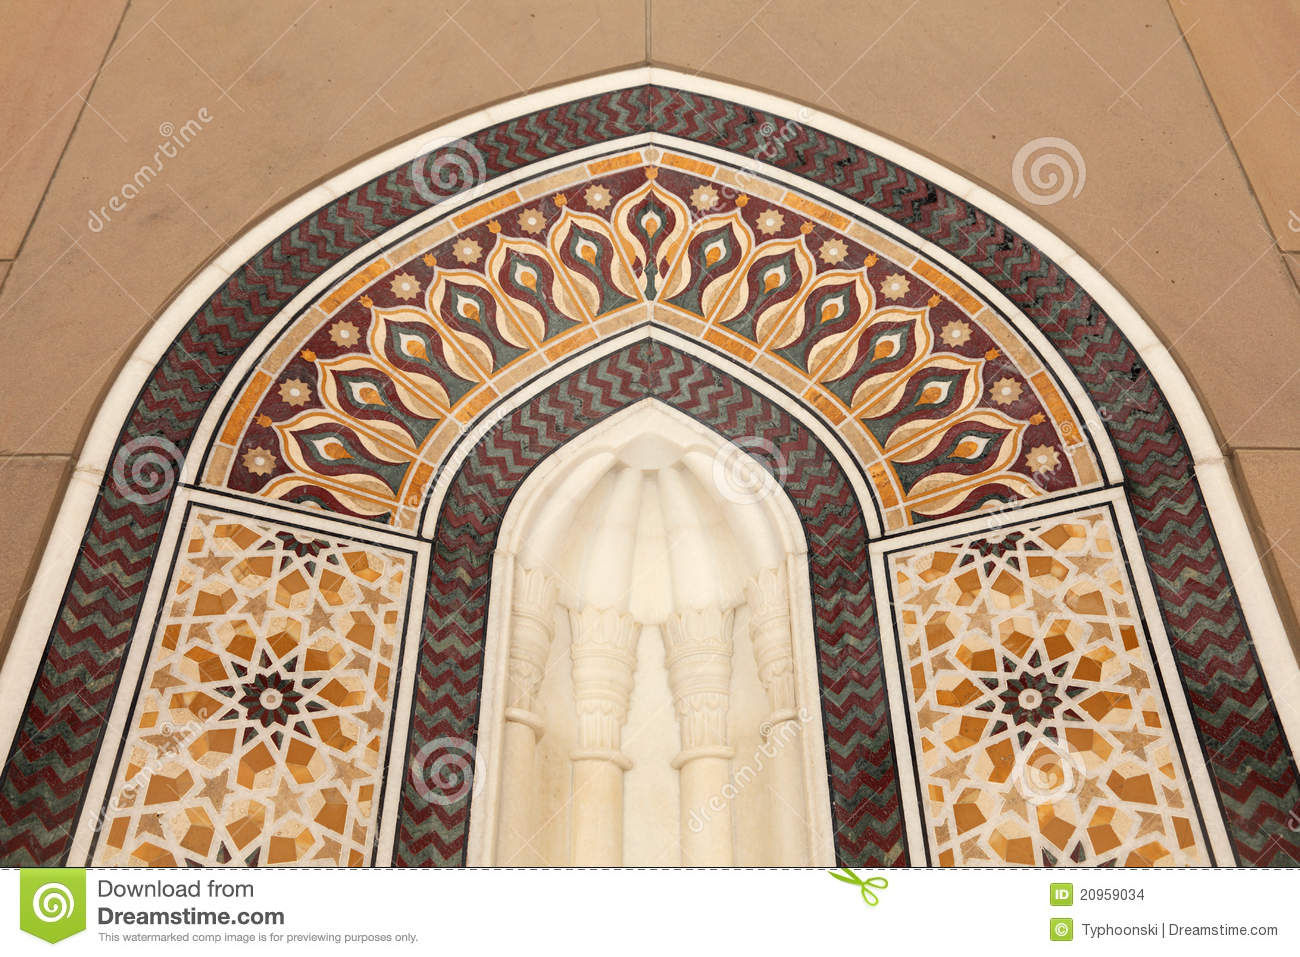 Oriental mosaic decoration stock images image 20959034 for Decoration orientale